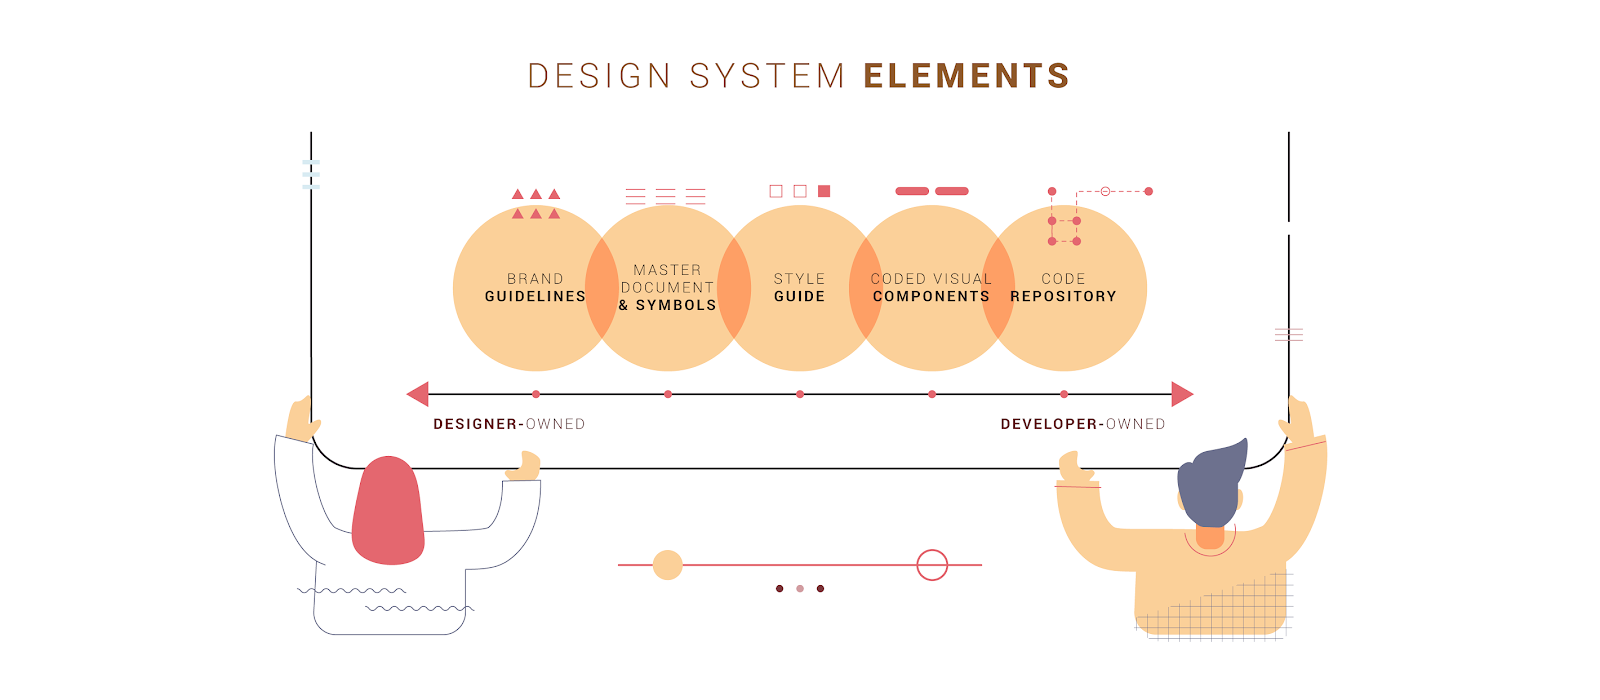 Examples of the elements of a design system on a spectrum from designer to developer-owned.